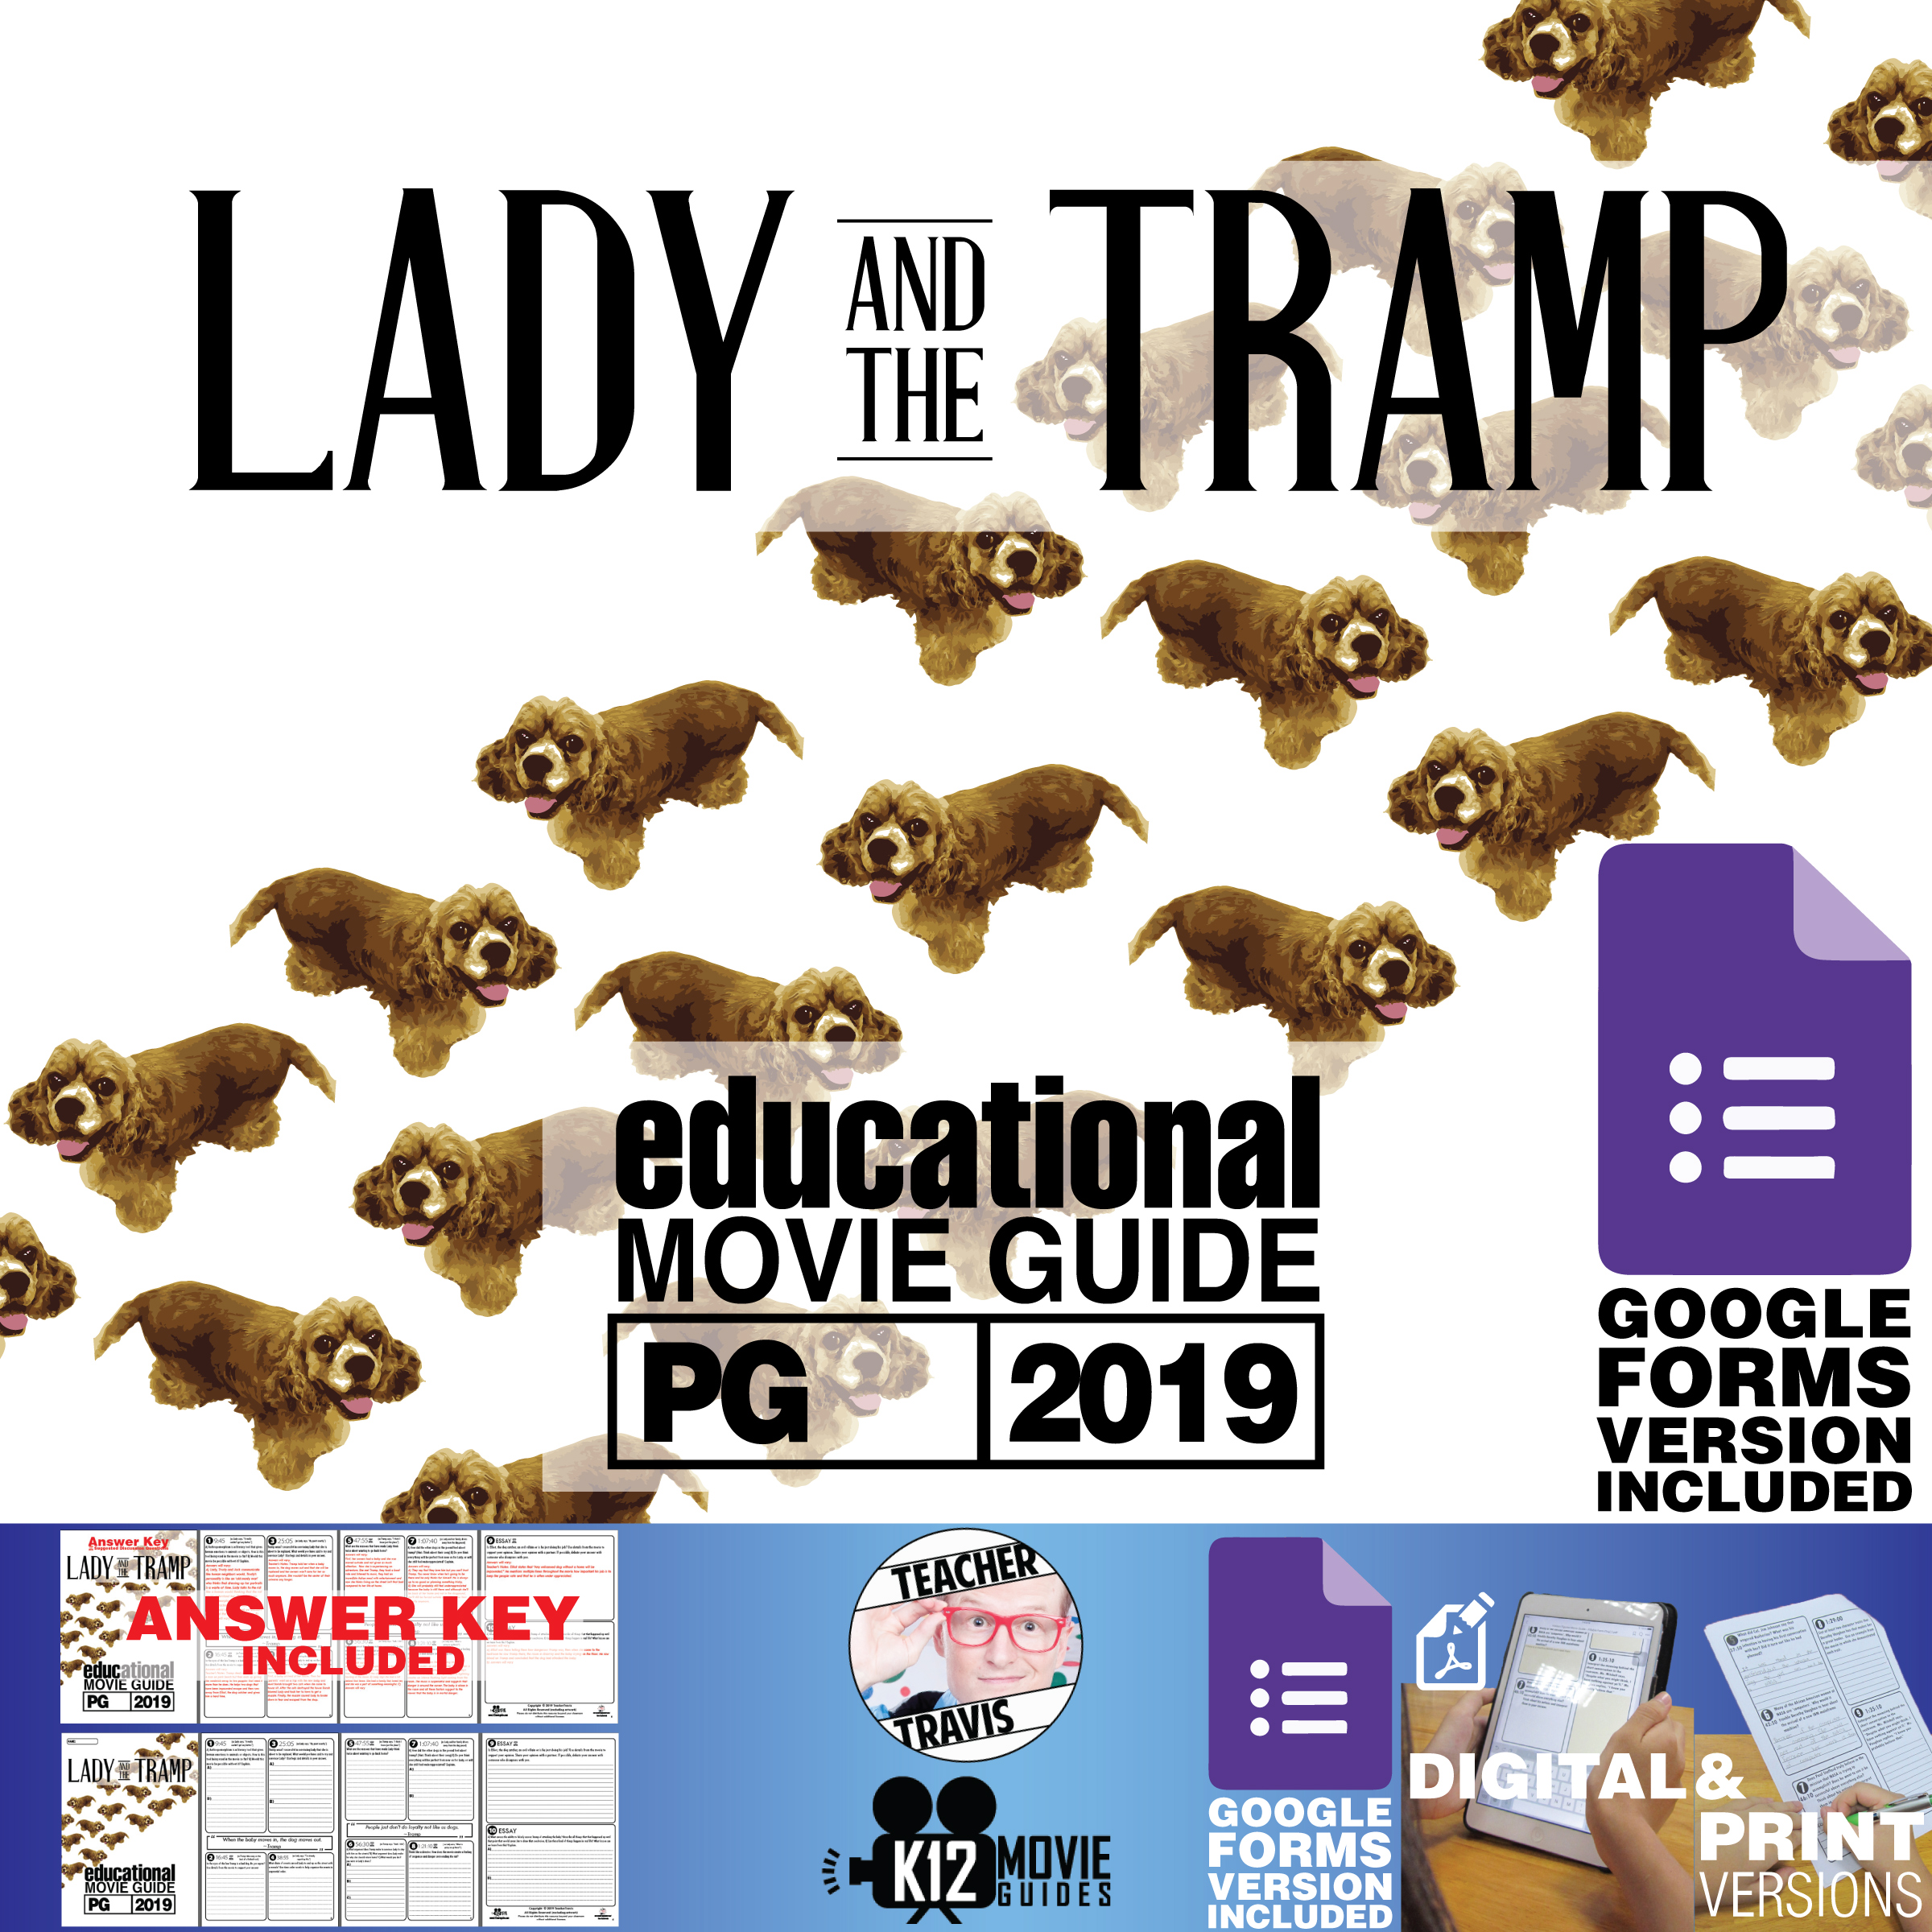 Lady and the Tramp Movie Guide   Questions   Worksheet (PG - 2019) Cover